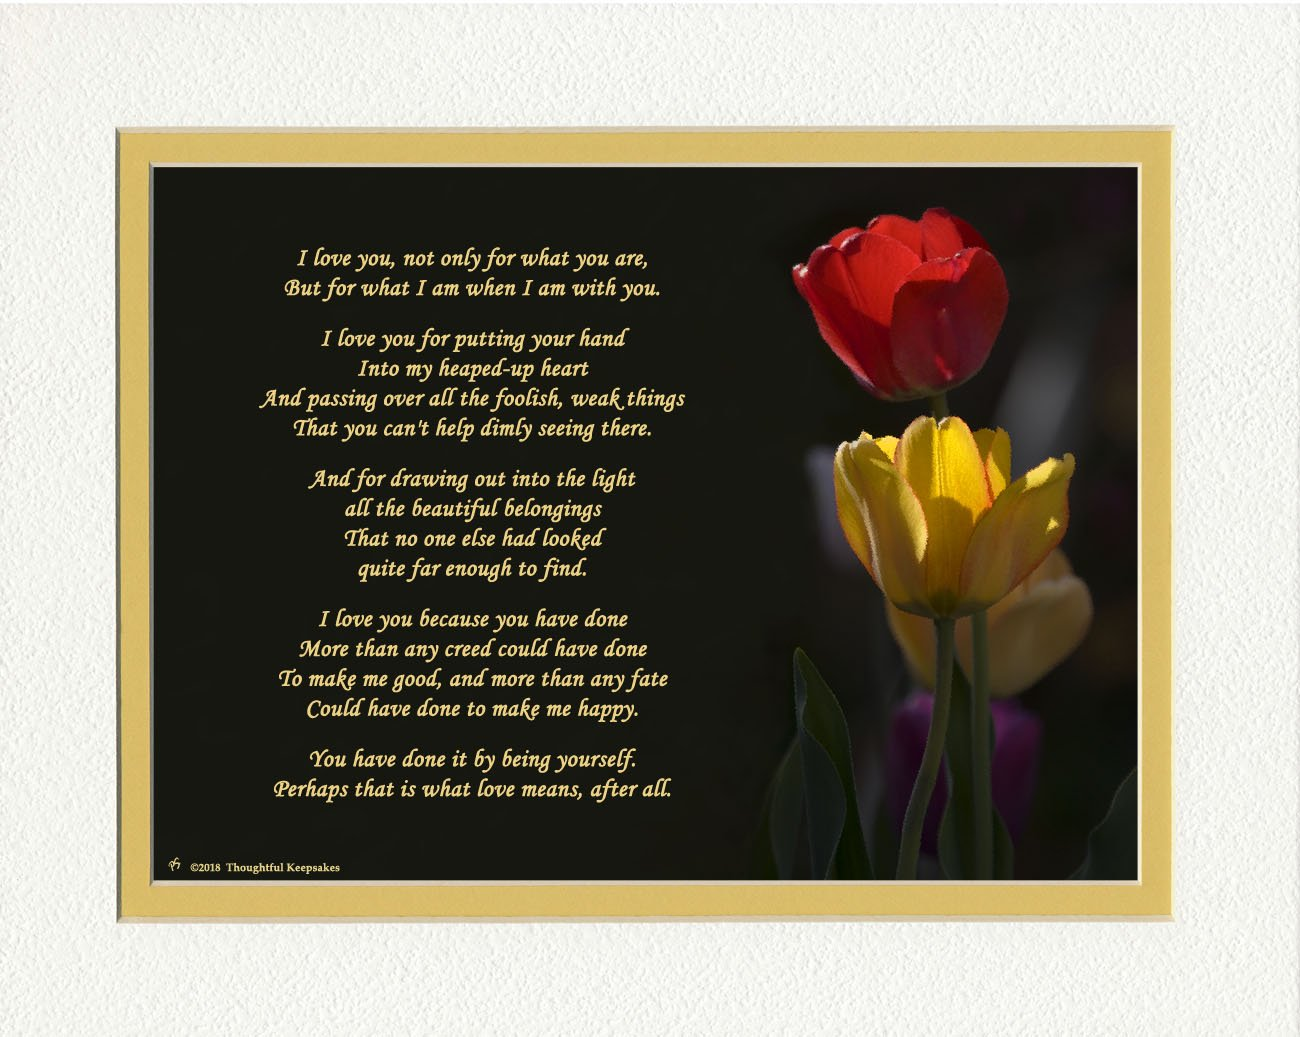 Gift for Wife or Girlfriend. Tulips Photo with''I Love You'' Poem by Roy Croft, 8x10 Double Matted. Special Anniversary, Valentine's Day, Christmas or Birthday Gifts